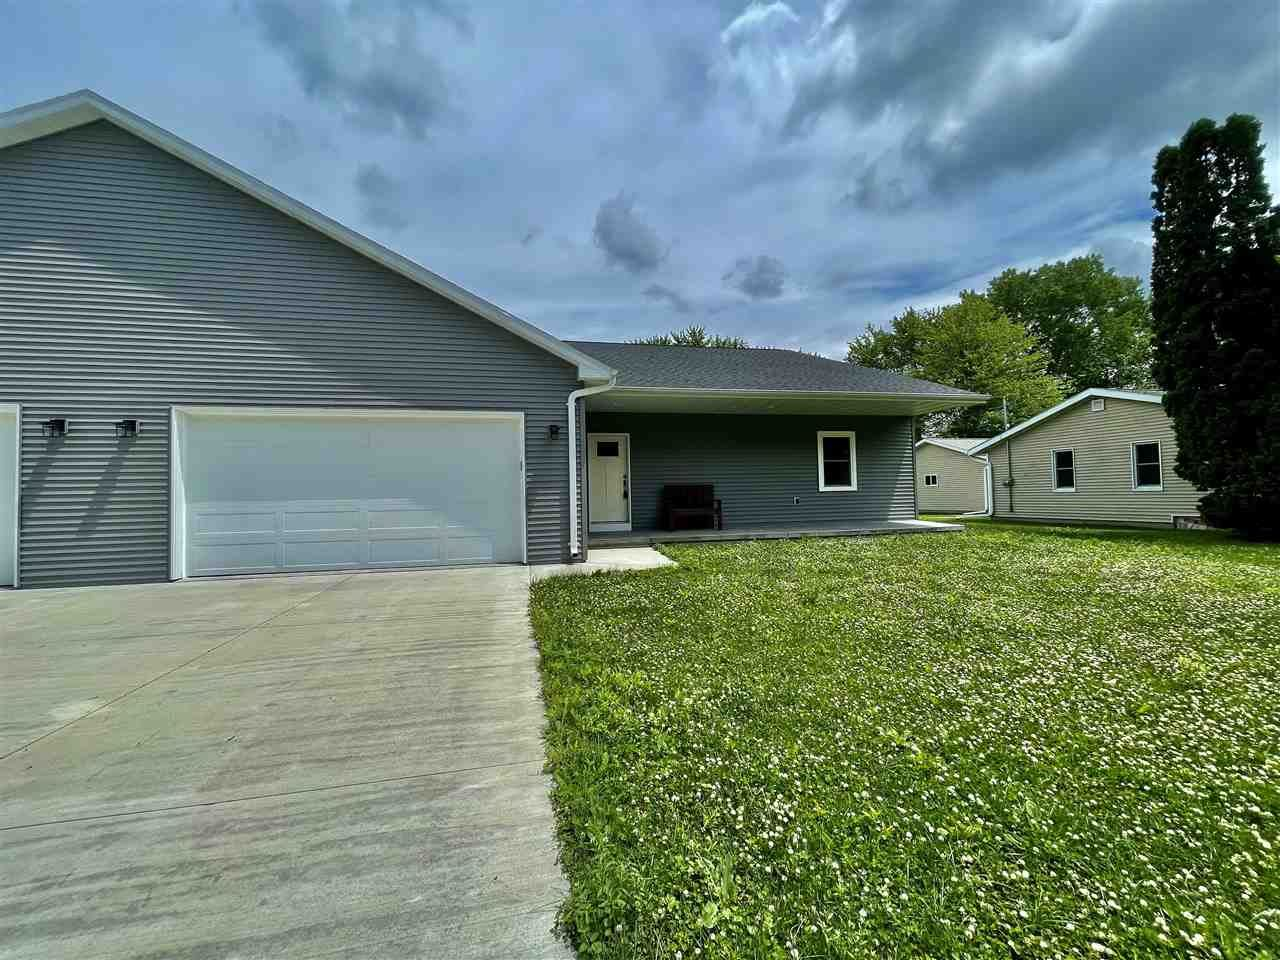 208 S WASHINGTON Street, Berlin, WI 54923 - MLS#: 50212965